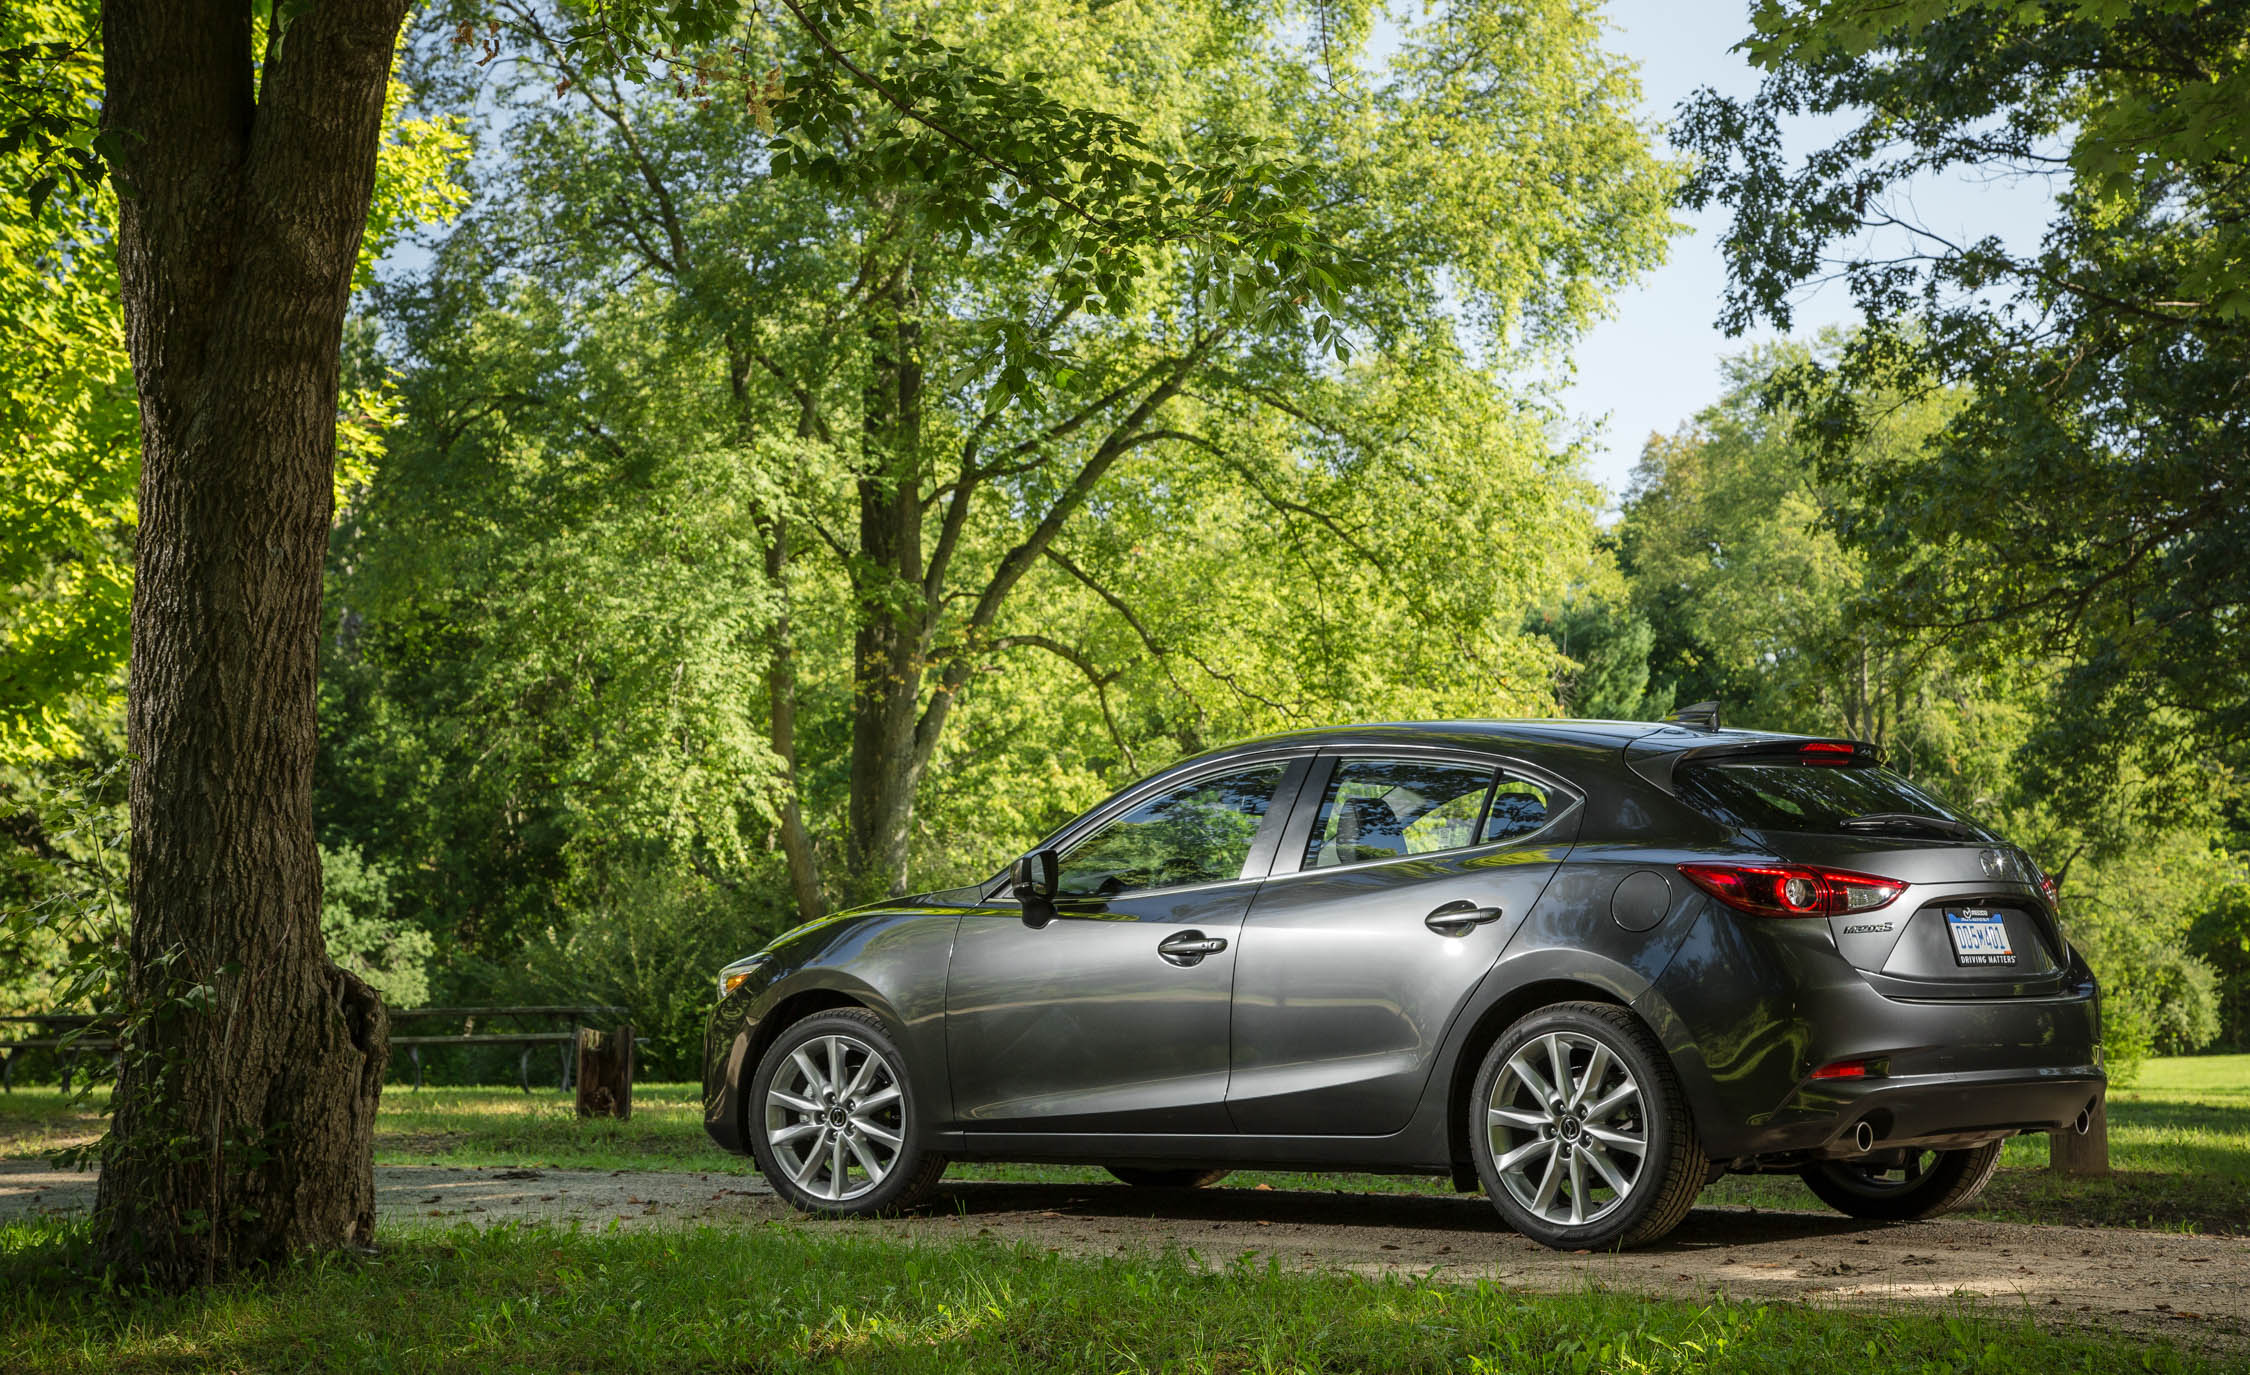 2017 Mazda3 Hatchback Exterior Side And Rear View (Photo 28 of 40)